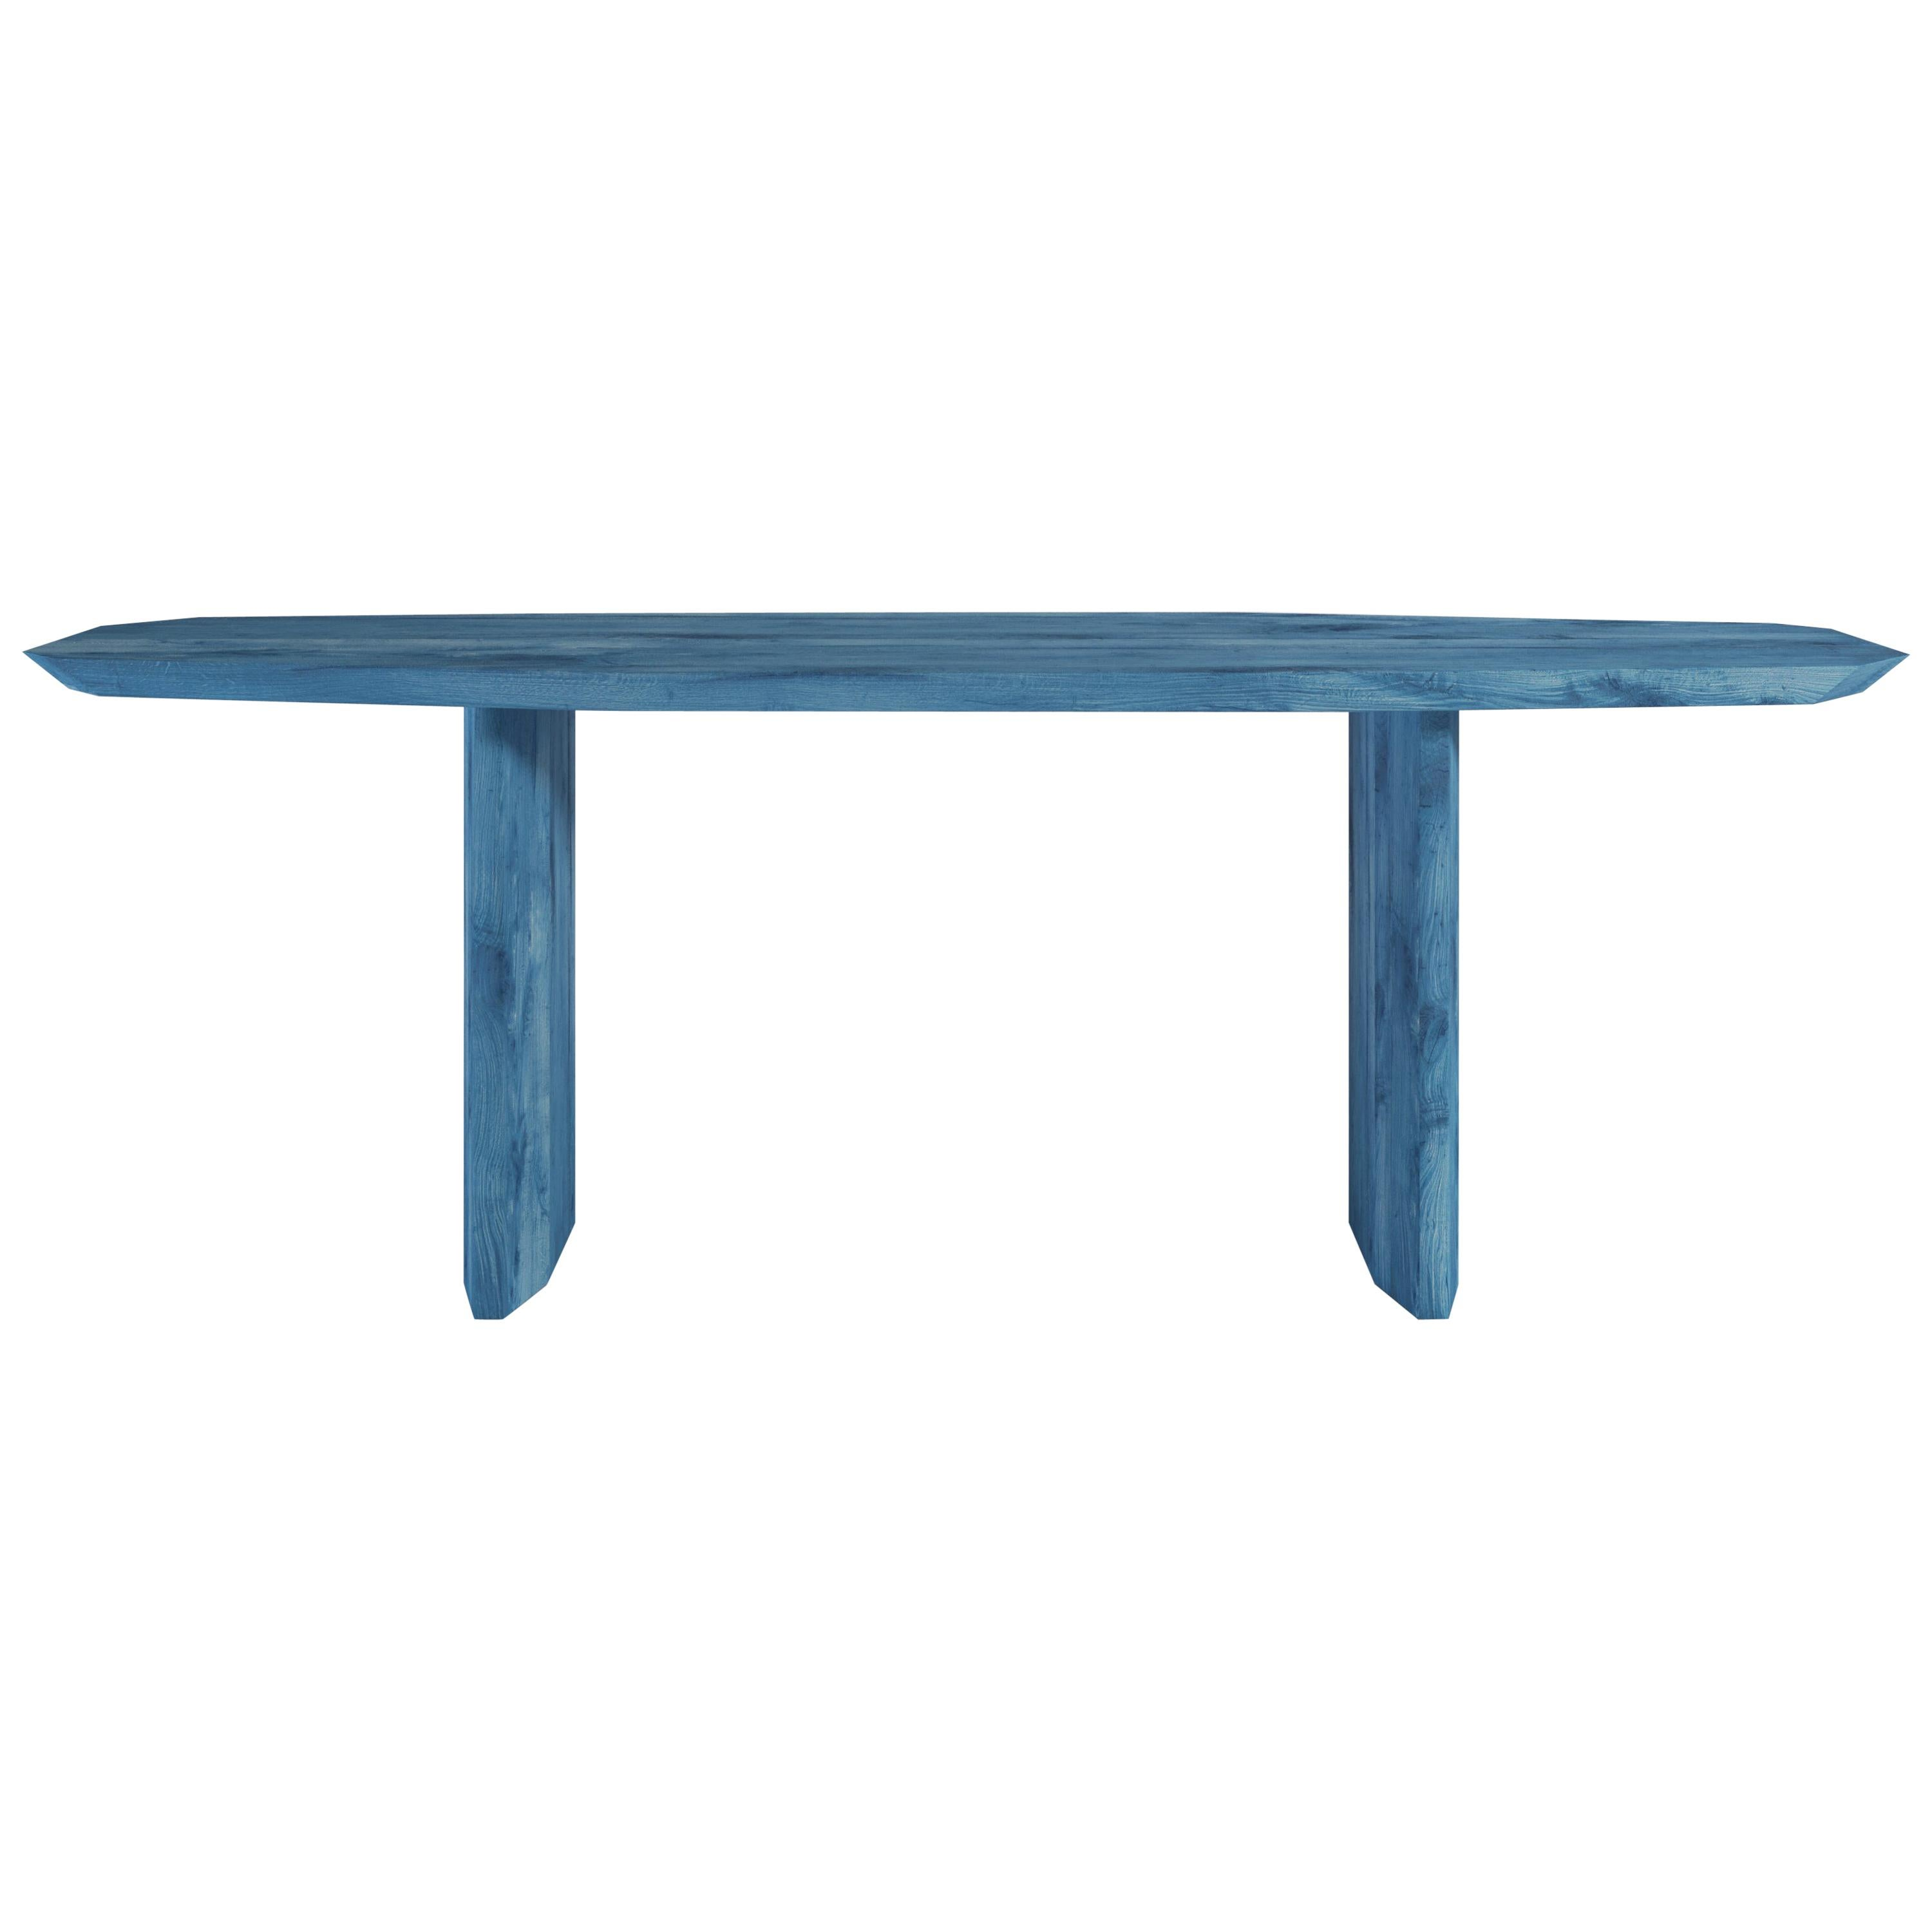 Planar Contemporary Dining Table in Wood by Tommaso Spinzi